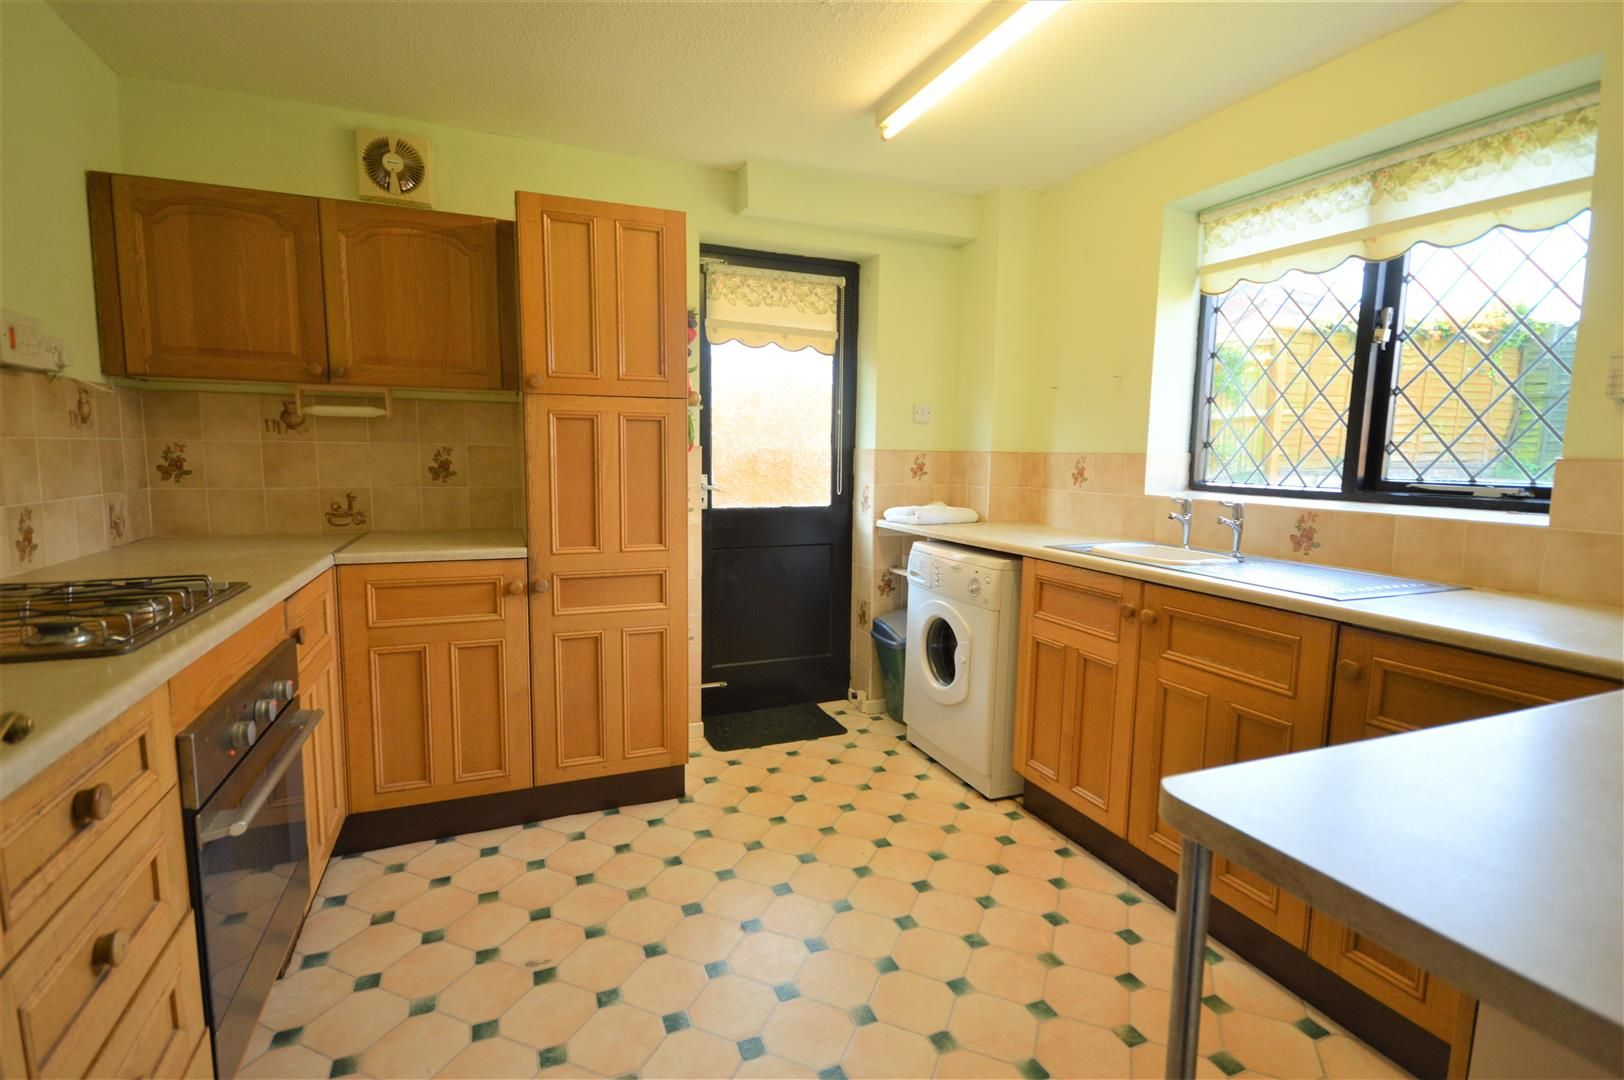 3 bed detached for sale in Leominster 2